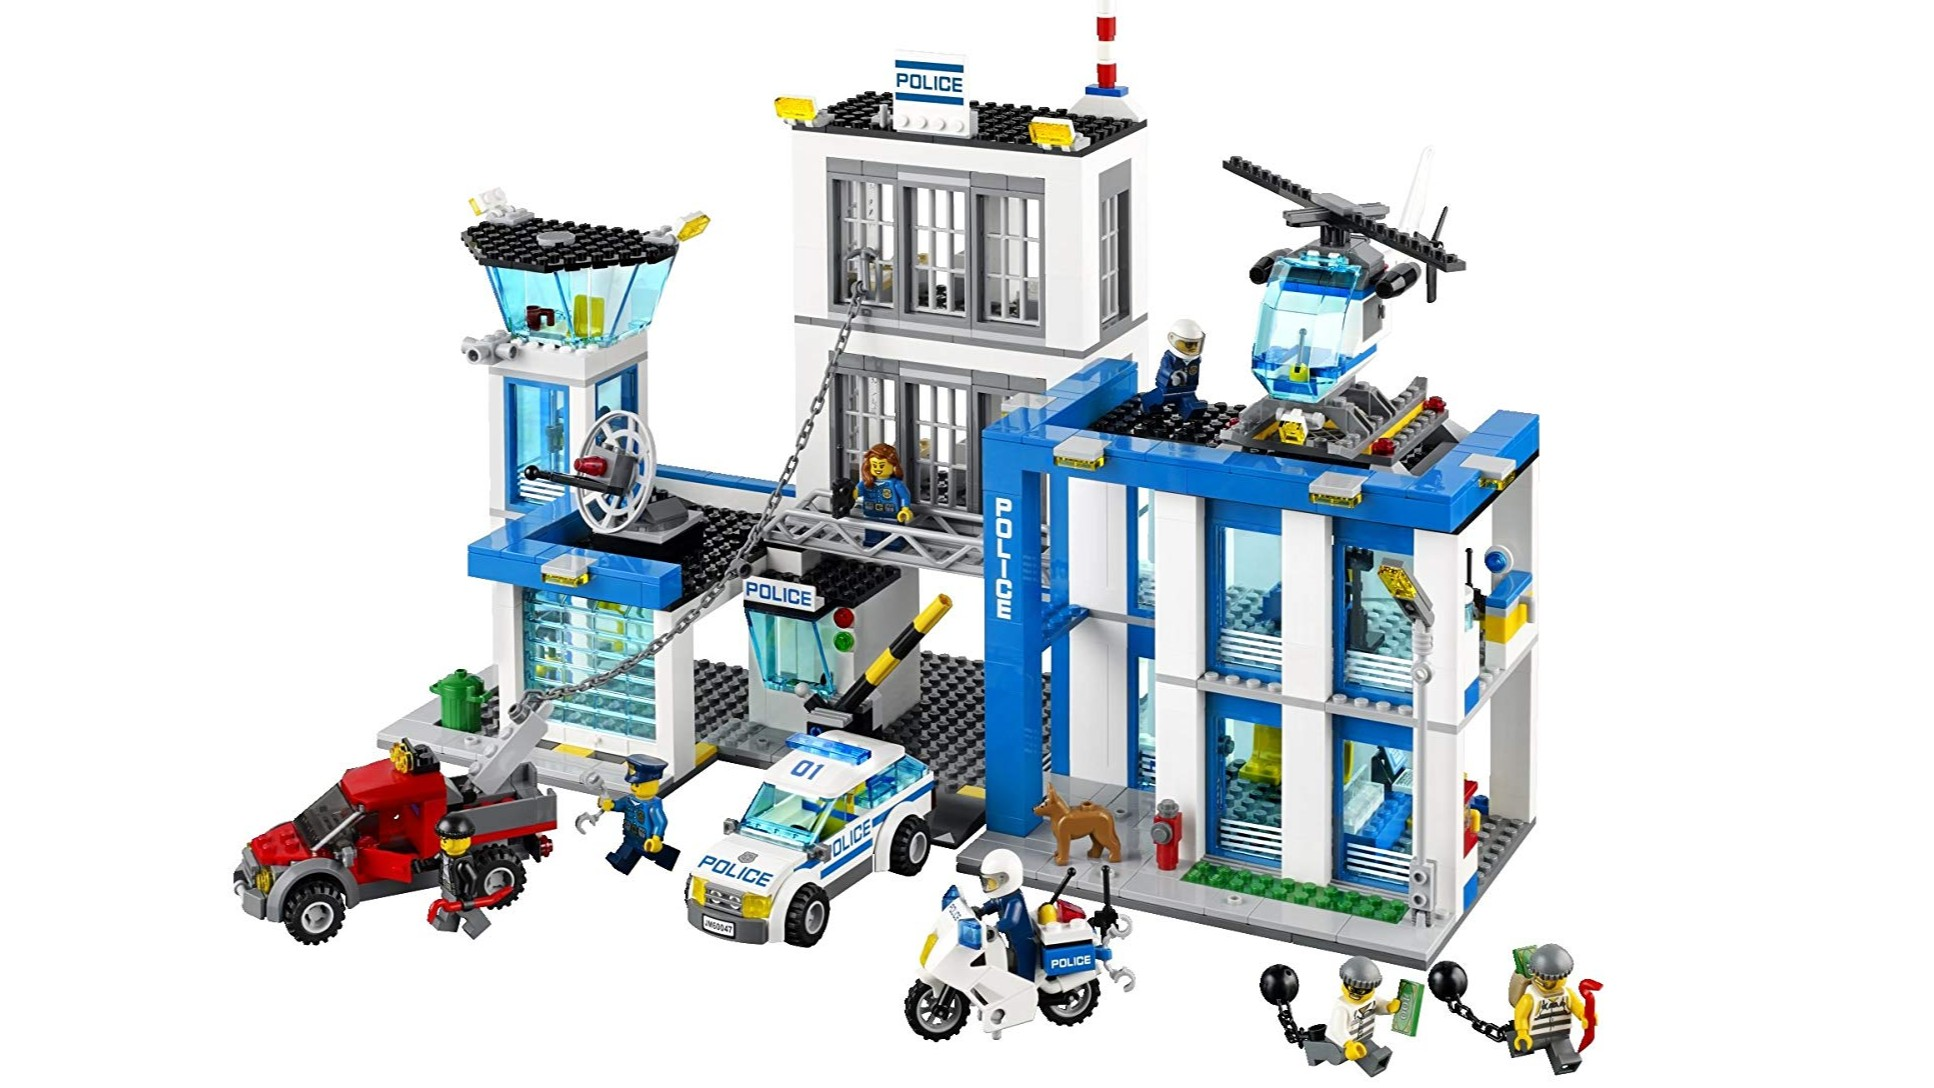 Best Lego City sets: Police station